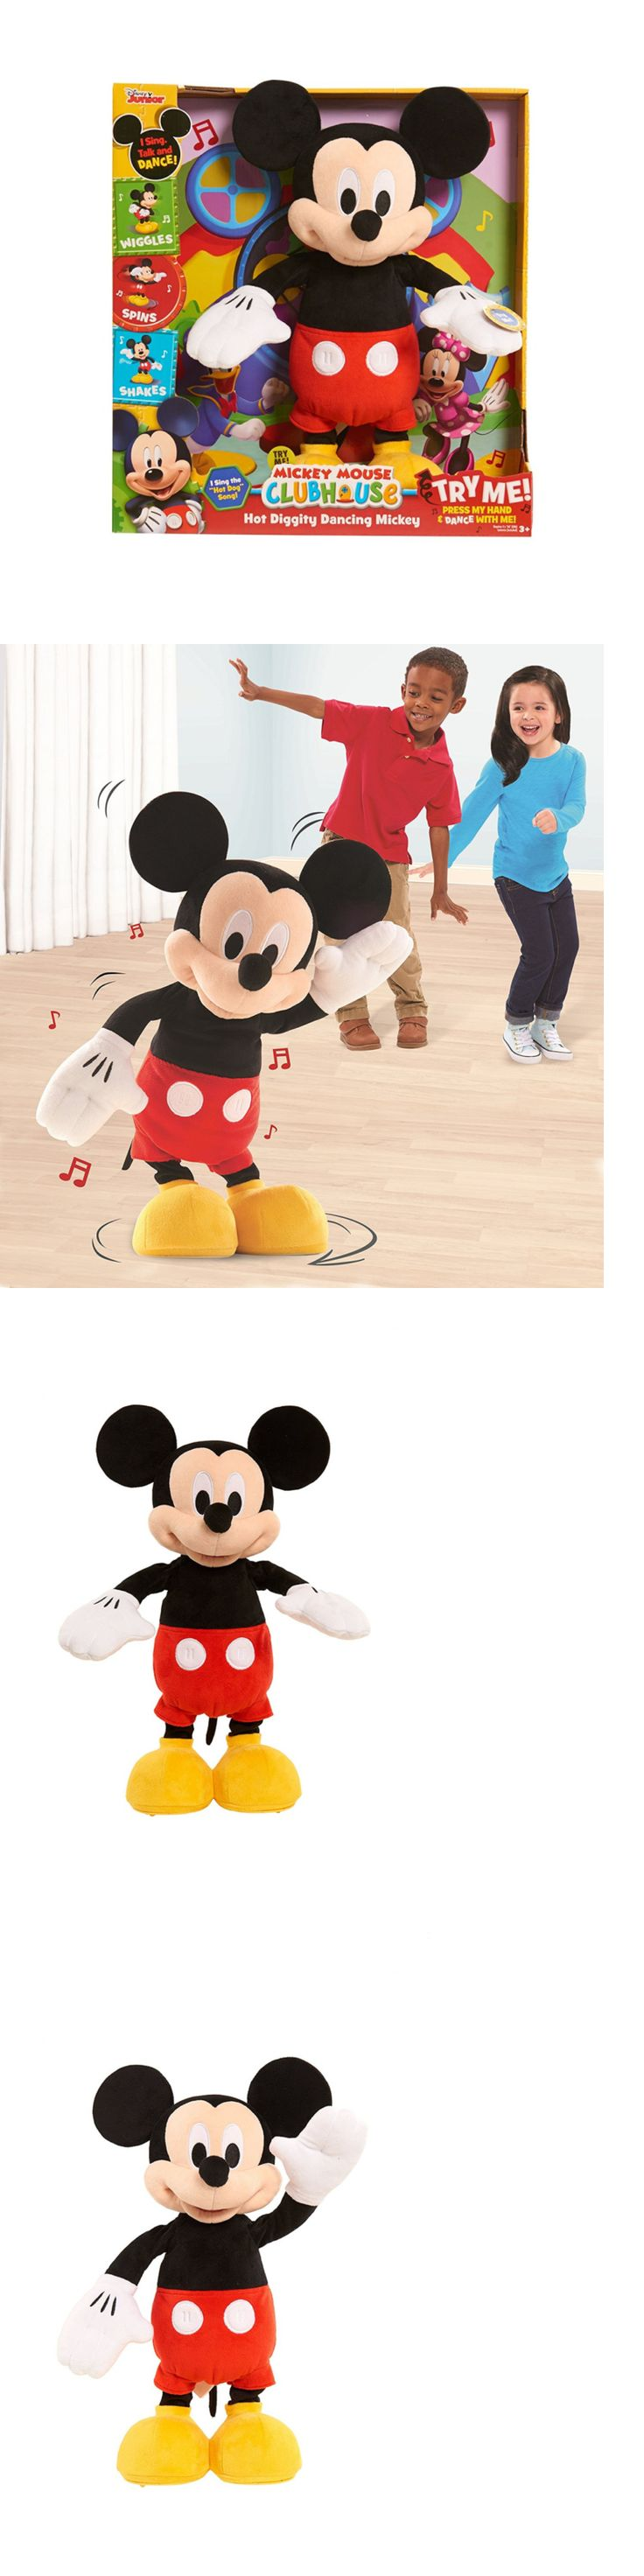 Mickey 19219: Just Play 10080 Mickey Mouse Clubhouse Hot Diggity Dancing Mickey -> BUY IT NOW ONLY: $49.99 on eBay!